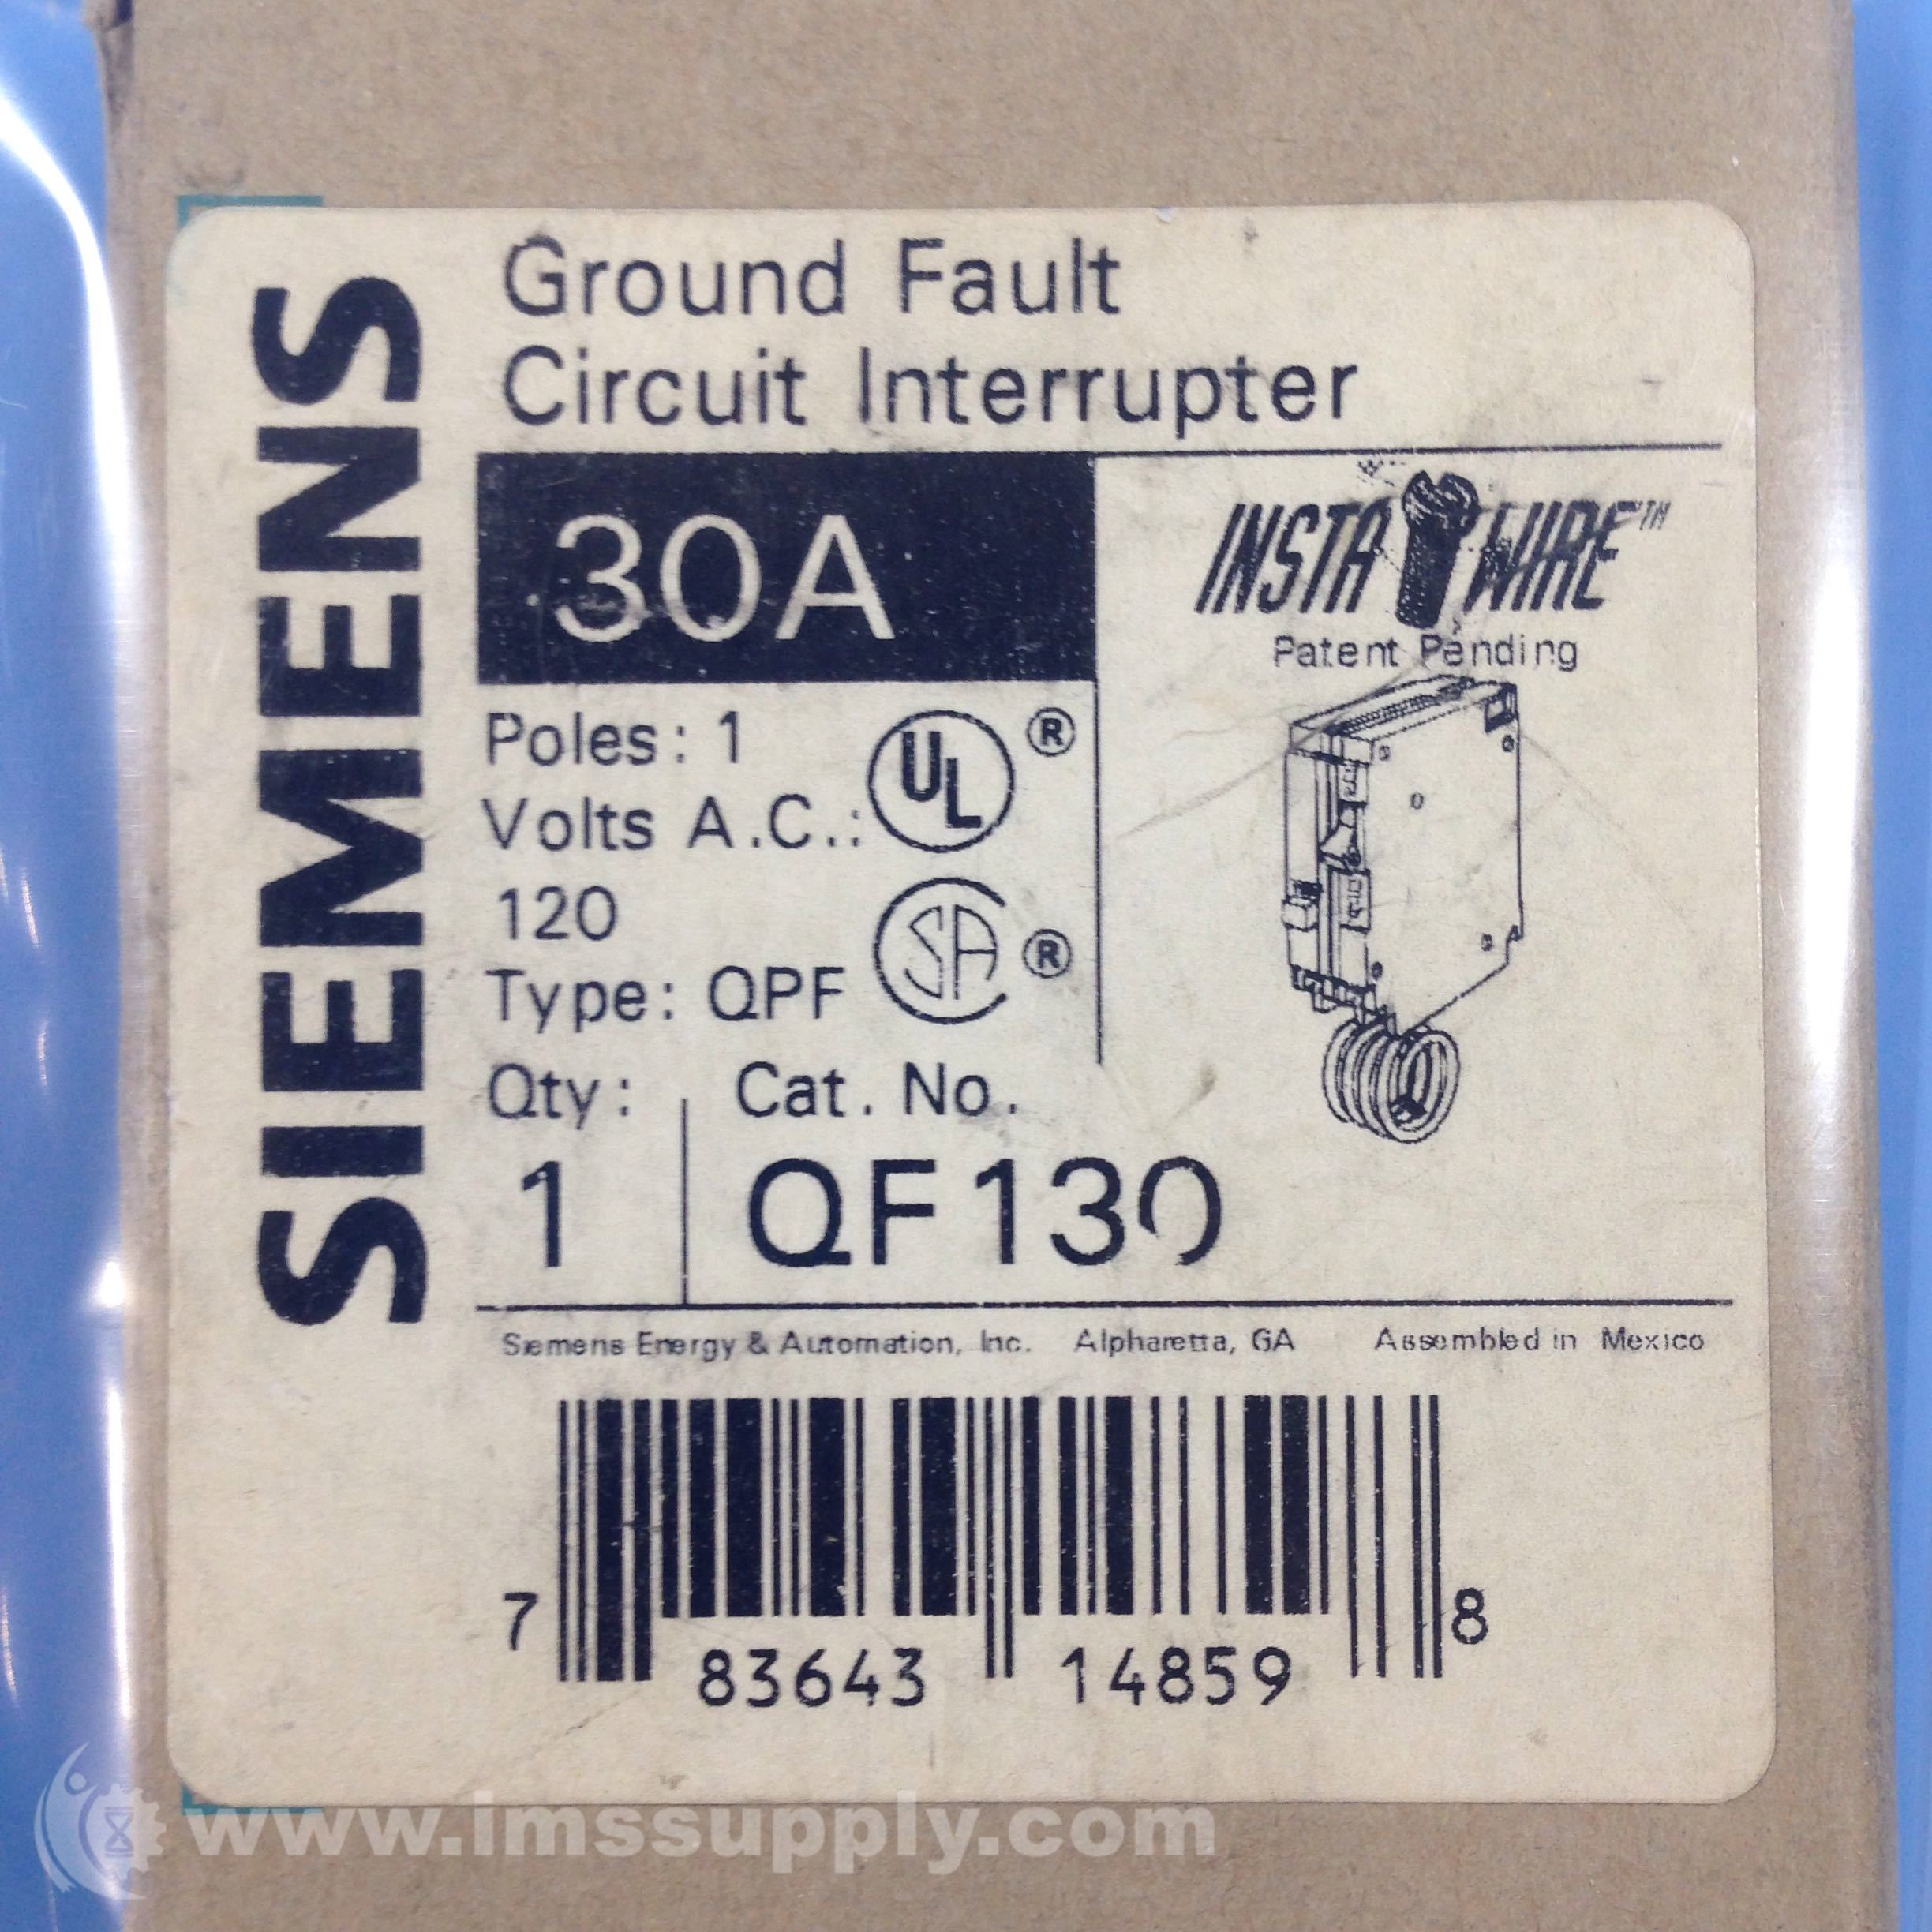 Siemens Qf130 Ground Fault Circuit Interrupter 120vac 30a 1 Pole Interupter Ims Supply